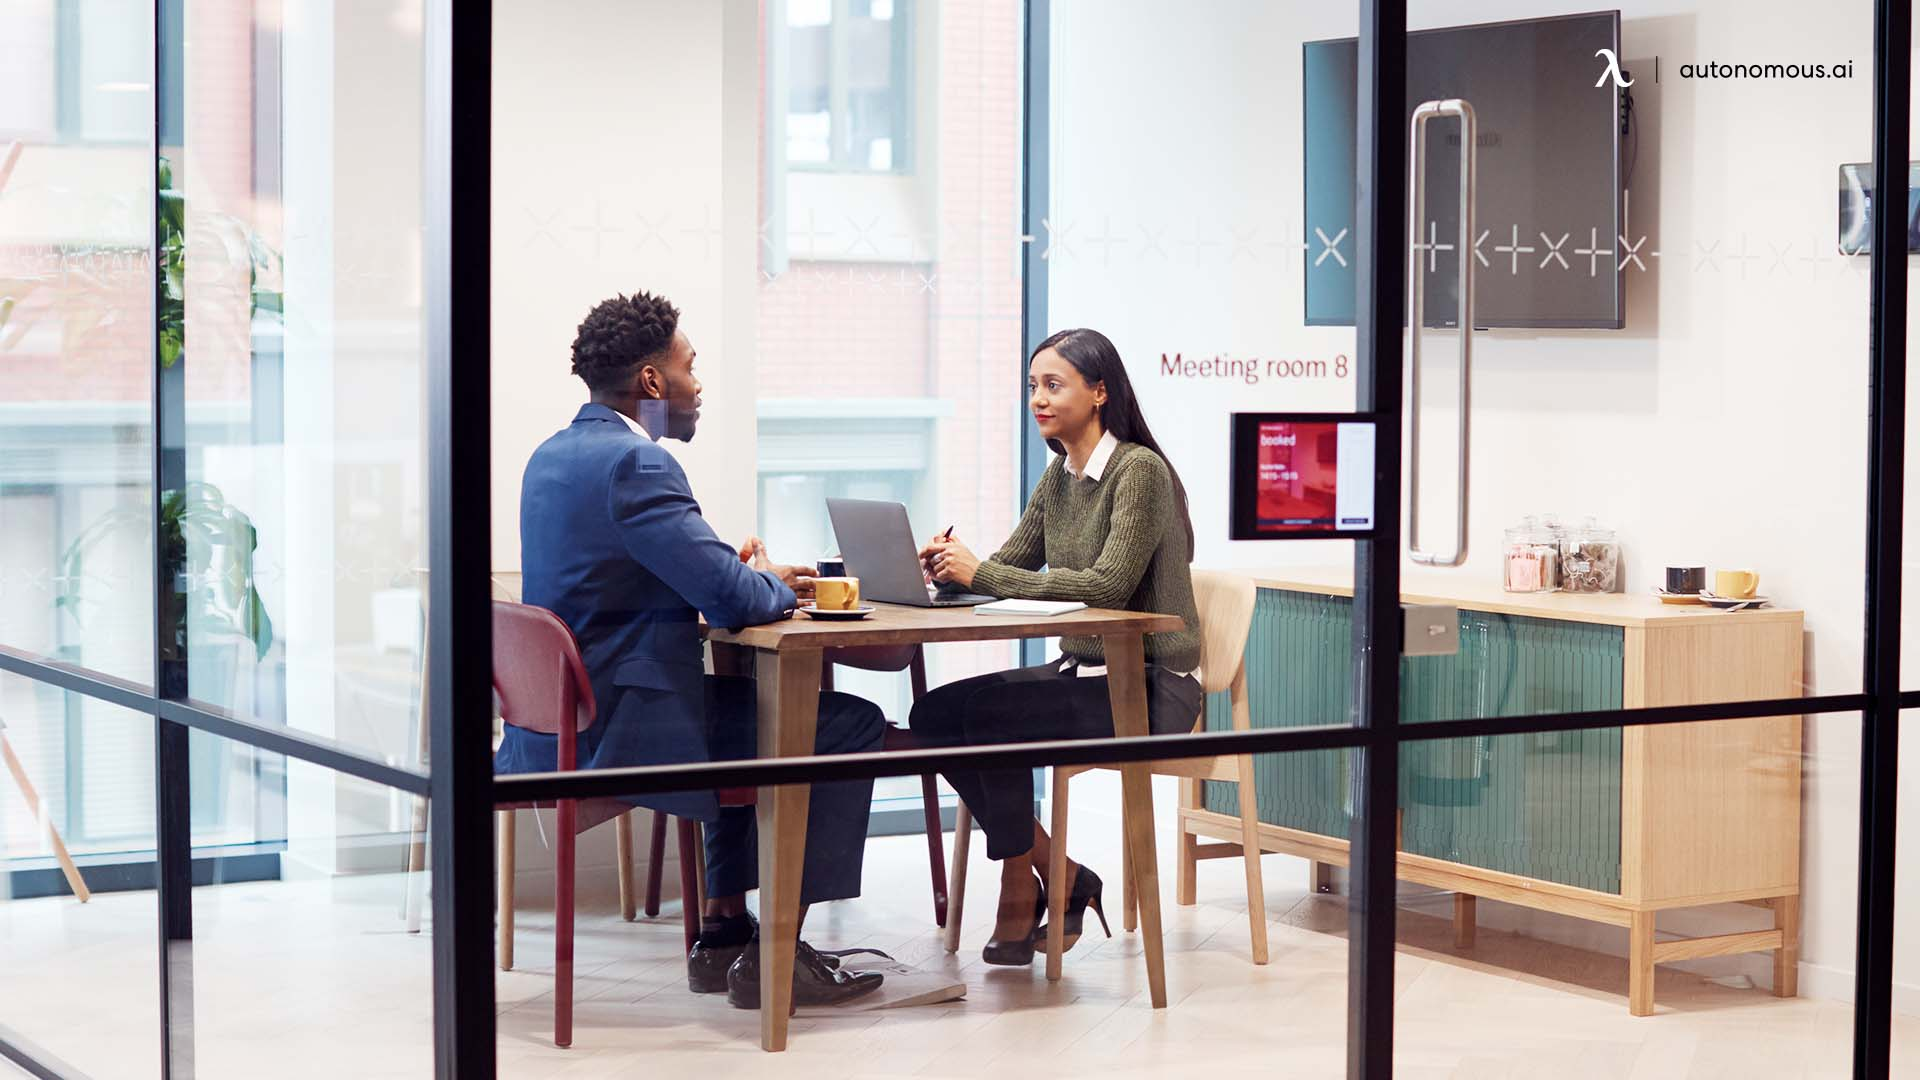 What is one on one meeting?